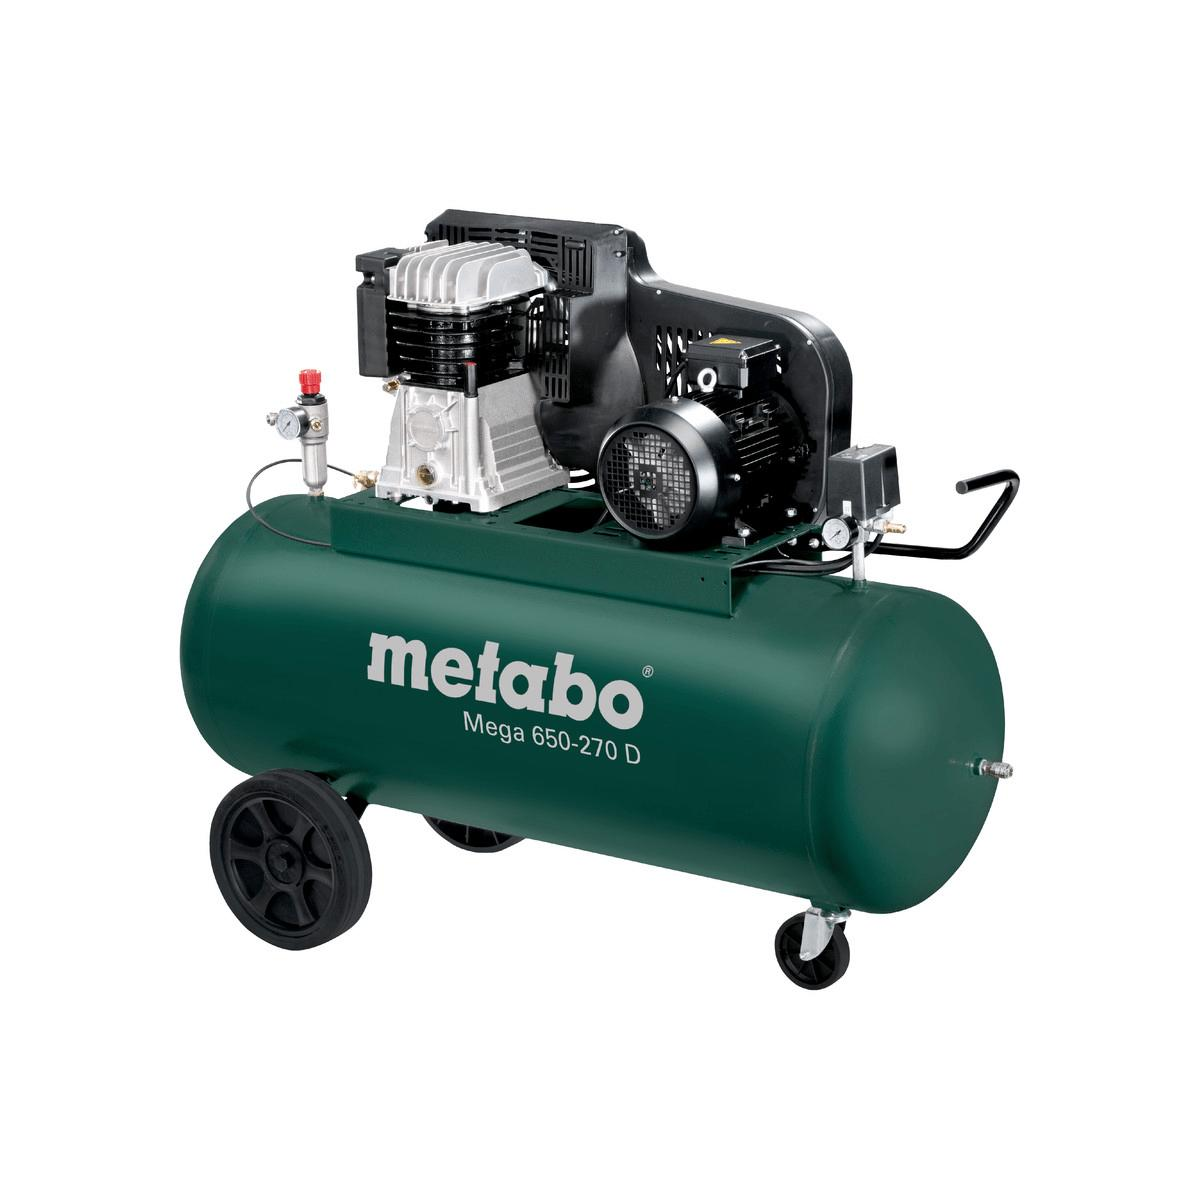 metabo kompressor mega 650 270 d 400v 270 liter 10 bar. Black Bedroom Furniture Sets. Home Design Ideas